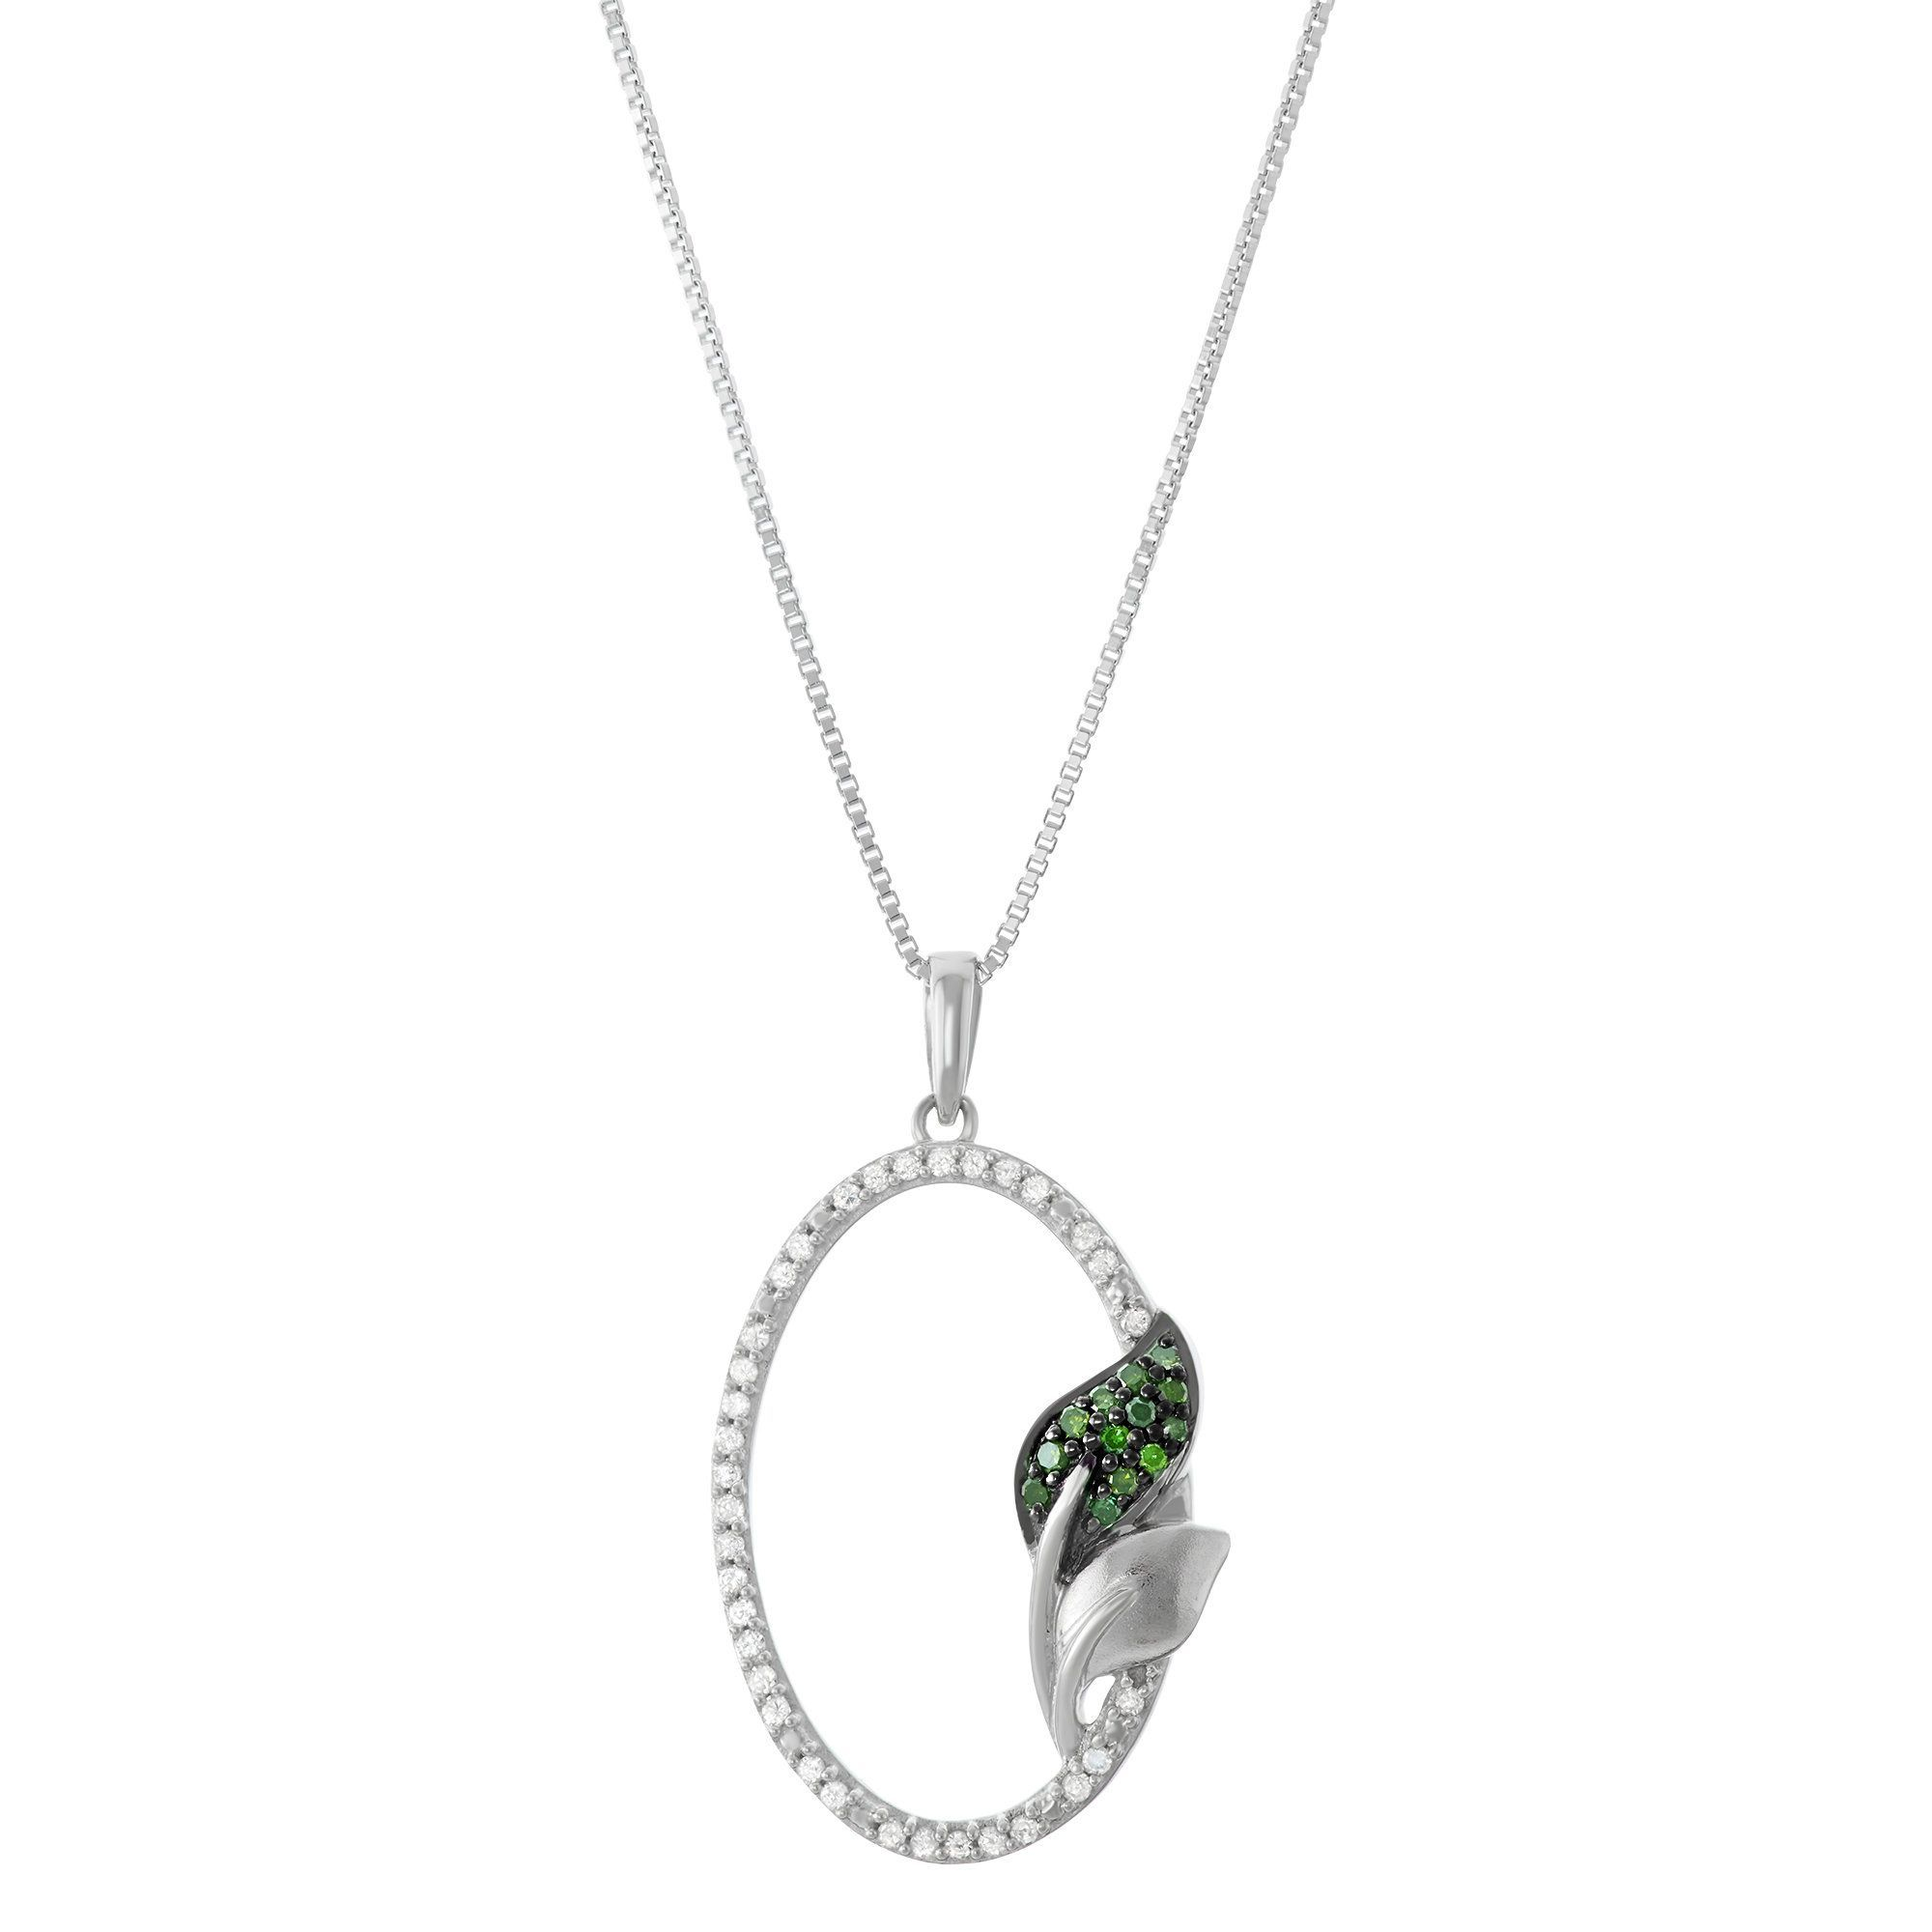 1/5 Cttw Oval Pendant With And Green Diamonds in Sterling Silver